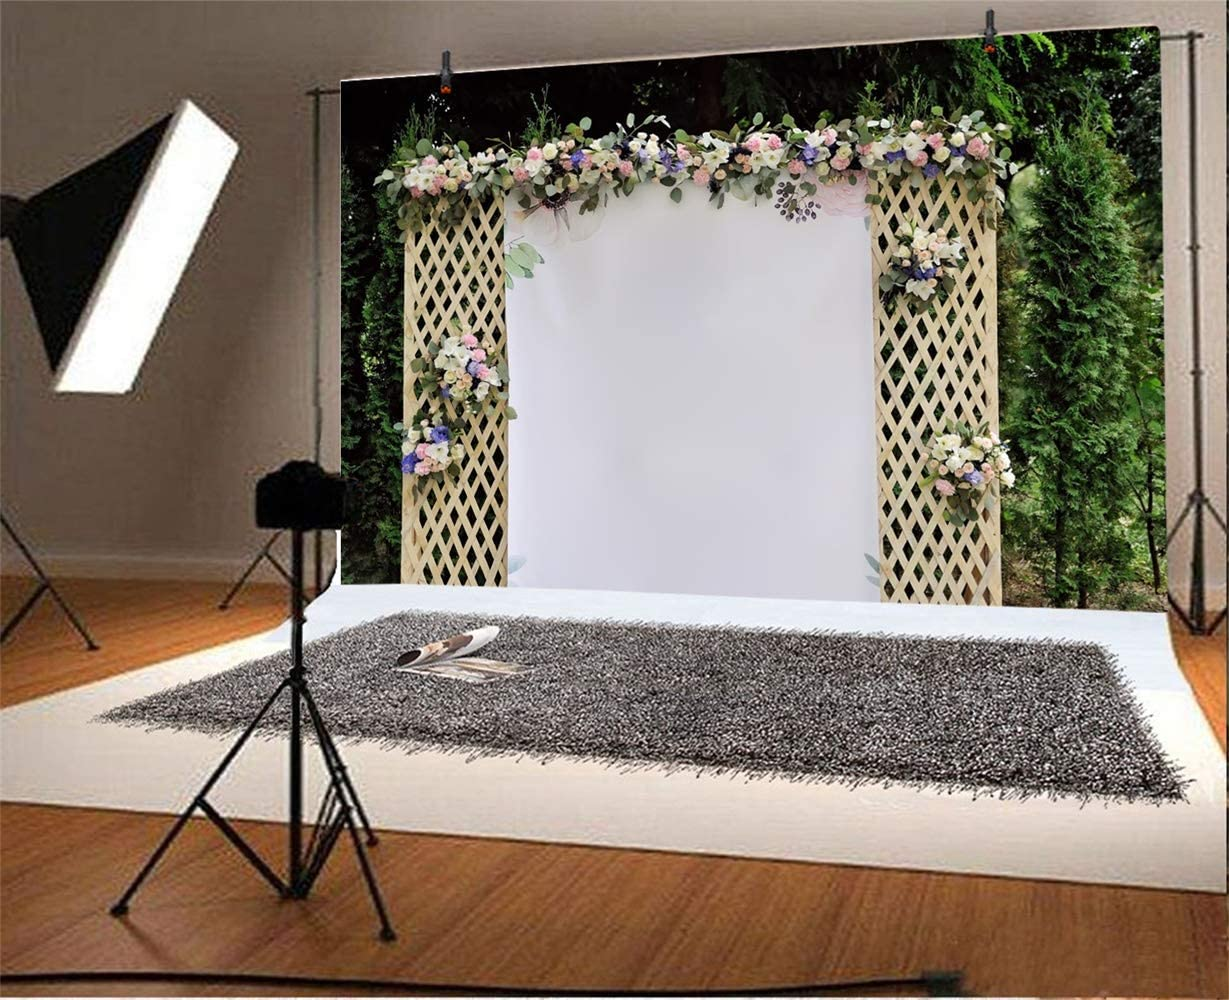 Romantic Outdoor Floral Wedding Trellis Backdrop 10x6.5ft Polyester Flowers White Photo Booth in The Woods Scene Background Wedding Shoot Bridal Shower Bride Groom Portrait Shoot